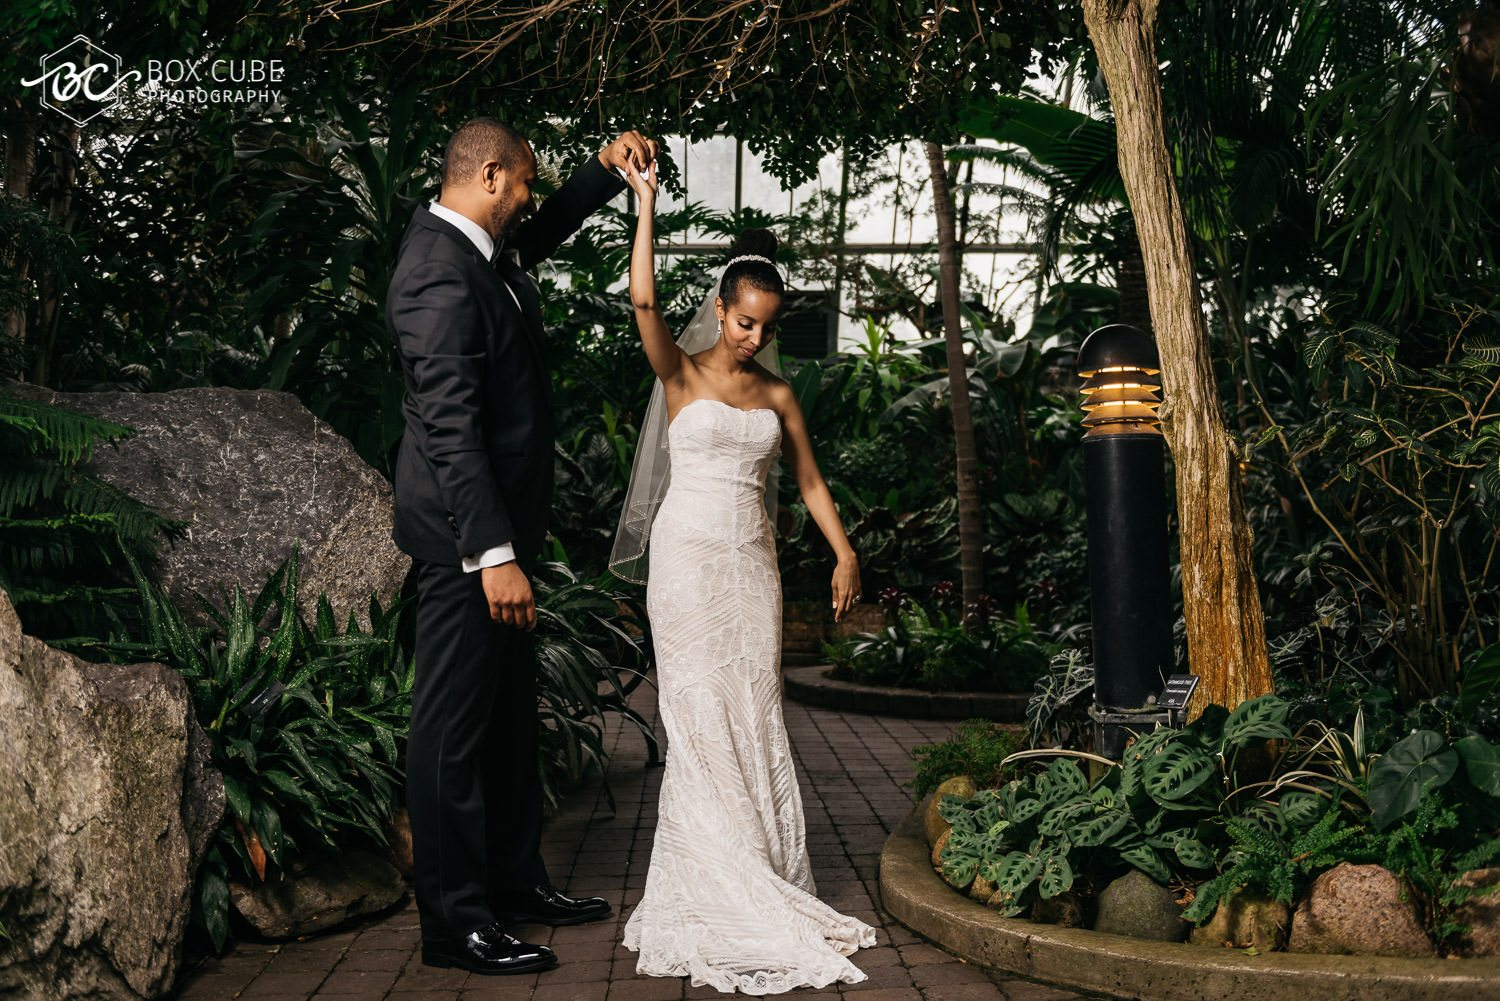 creative formal wedding portraits at muttart conservatory where bride is hugging the groom